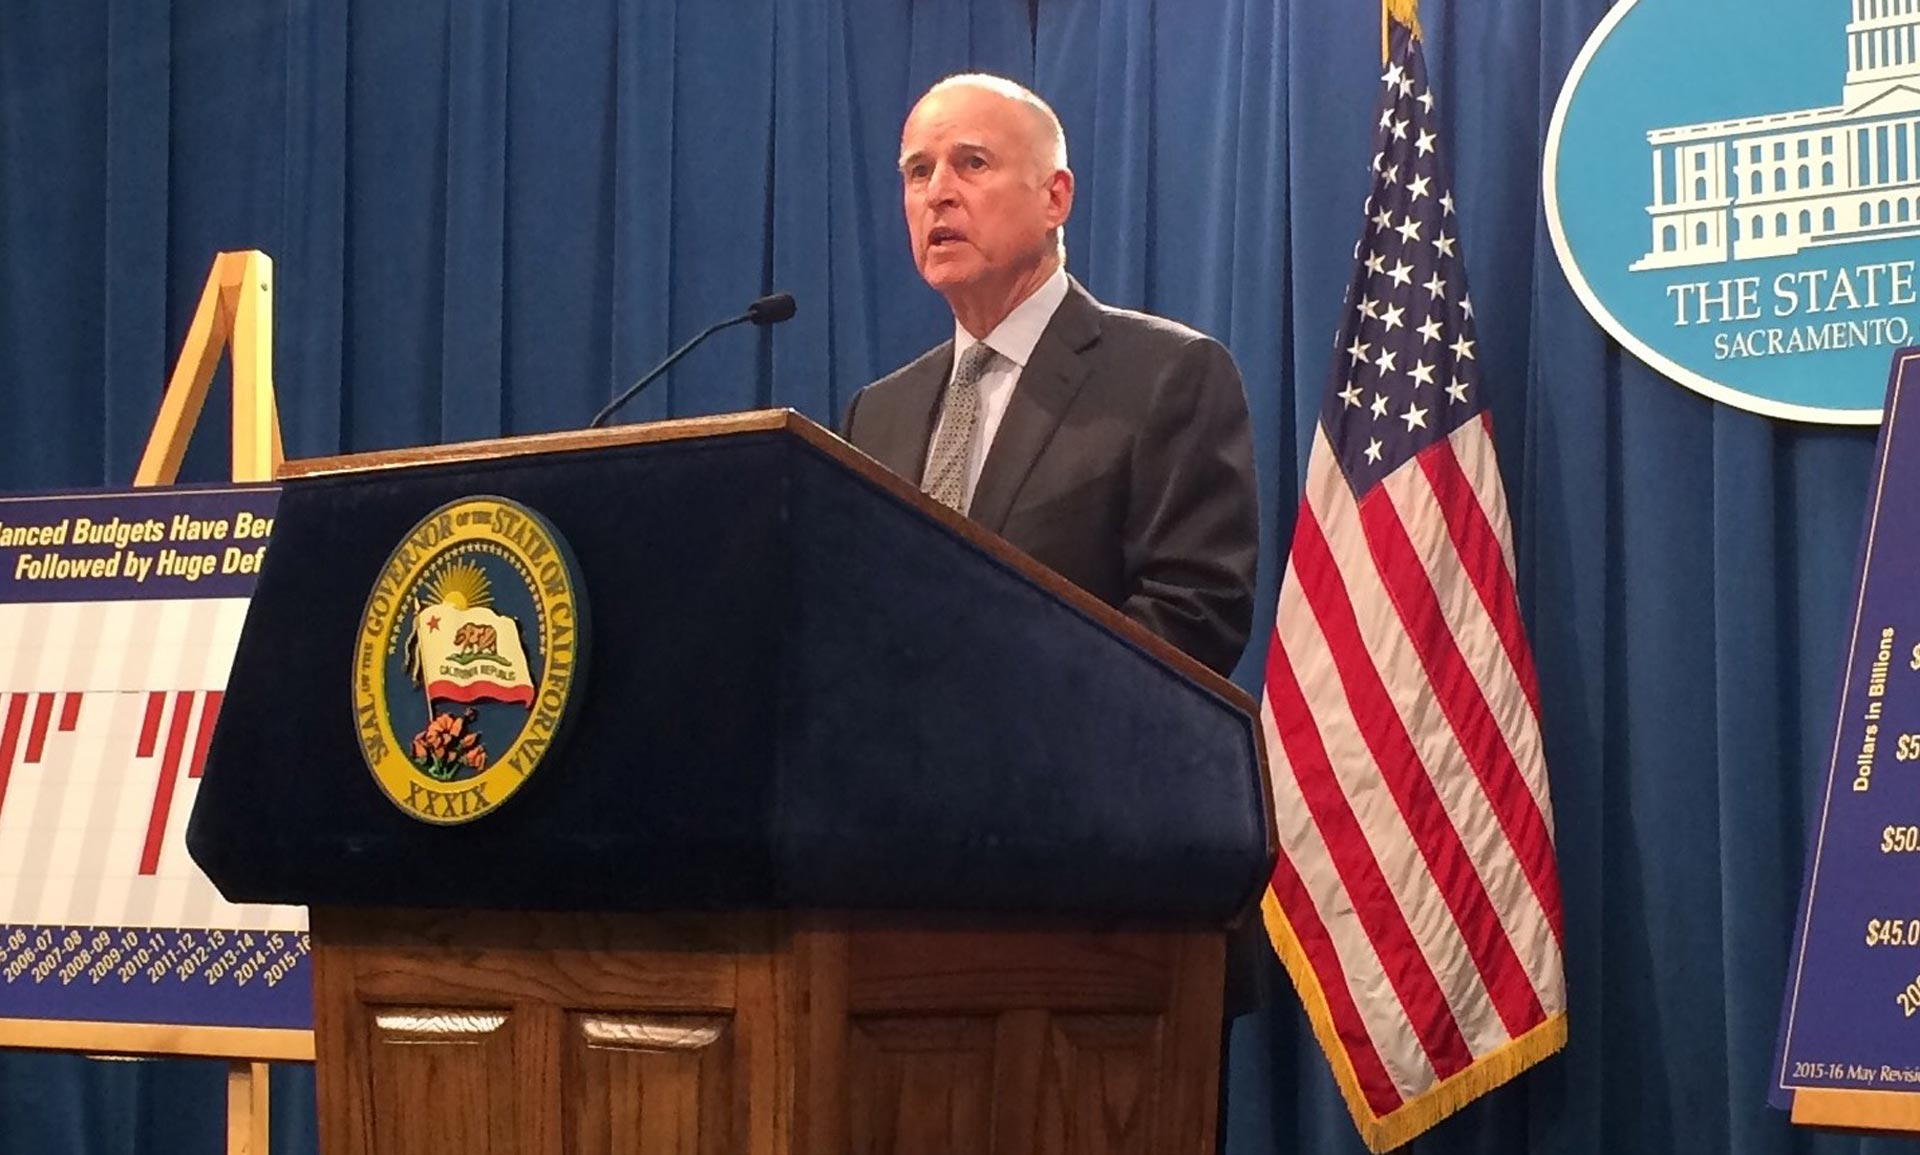 Gov. Jerry Brown releases his revised state budget on May 14, 2015 in Sacramento.